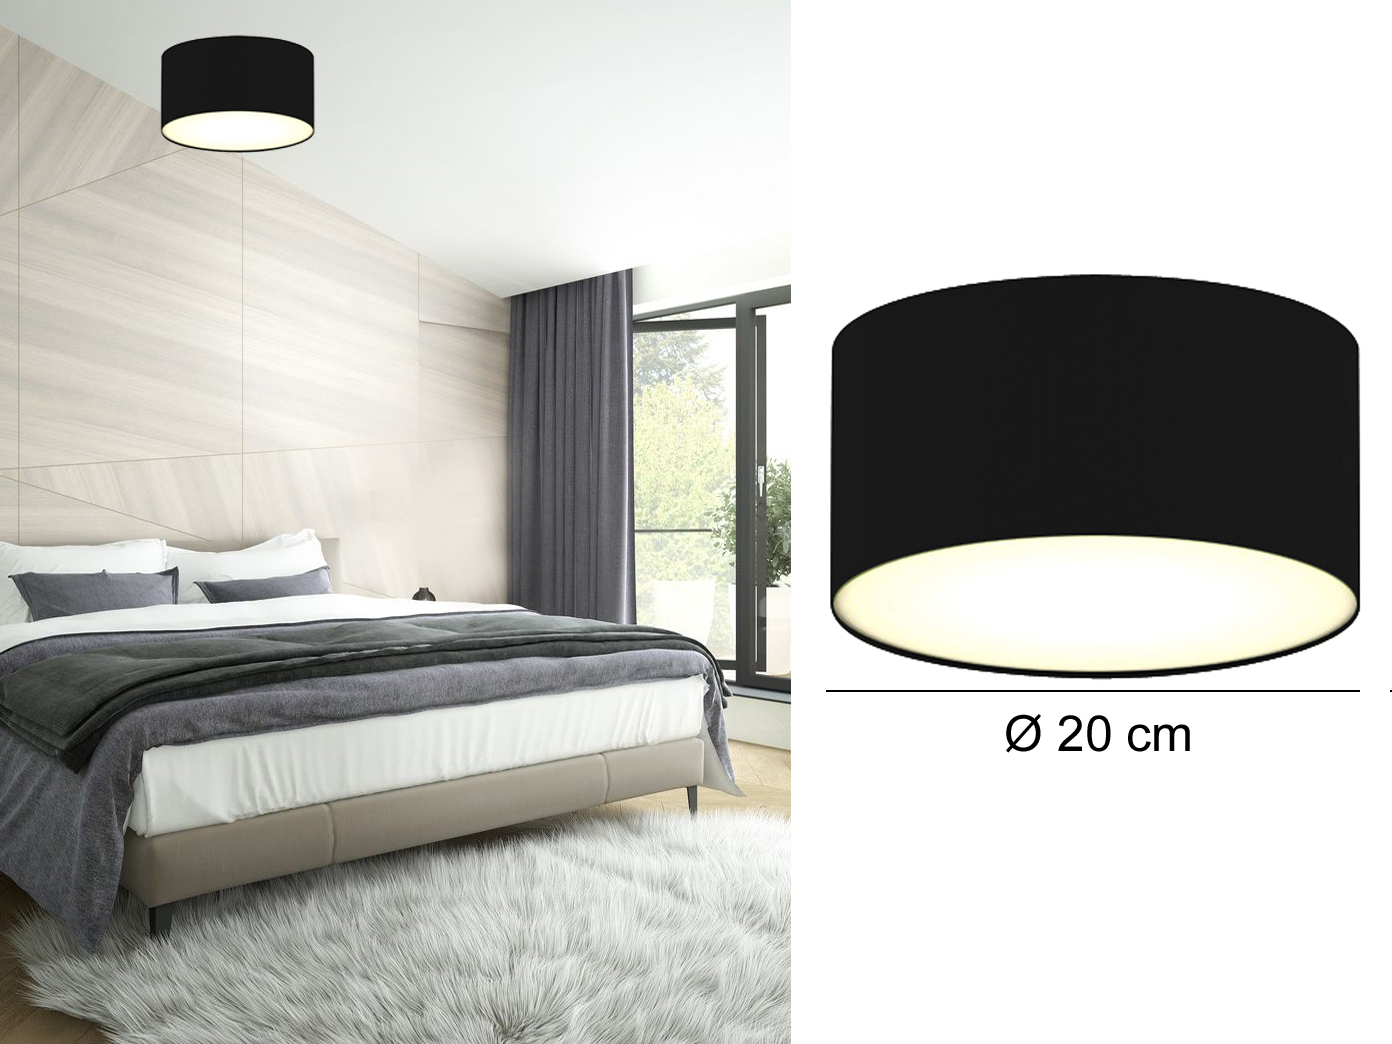 deckenlampe rund stoffschirm satinierte abdeckung wohnzimmer deckenleuchten ebay. Black Bedroom Furniture Sets. Home Design Ideas